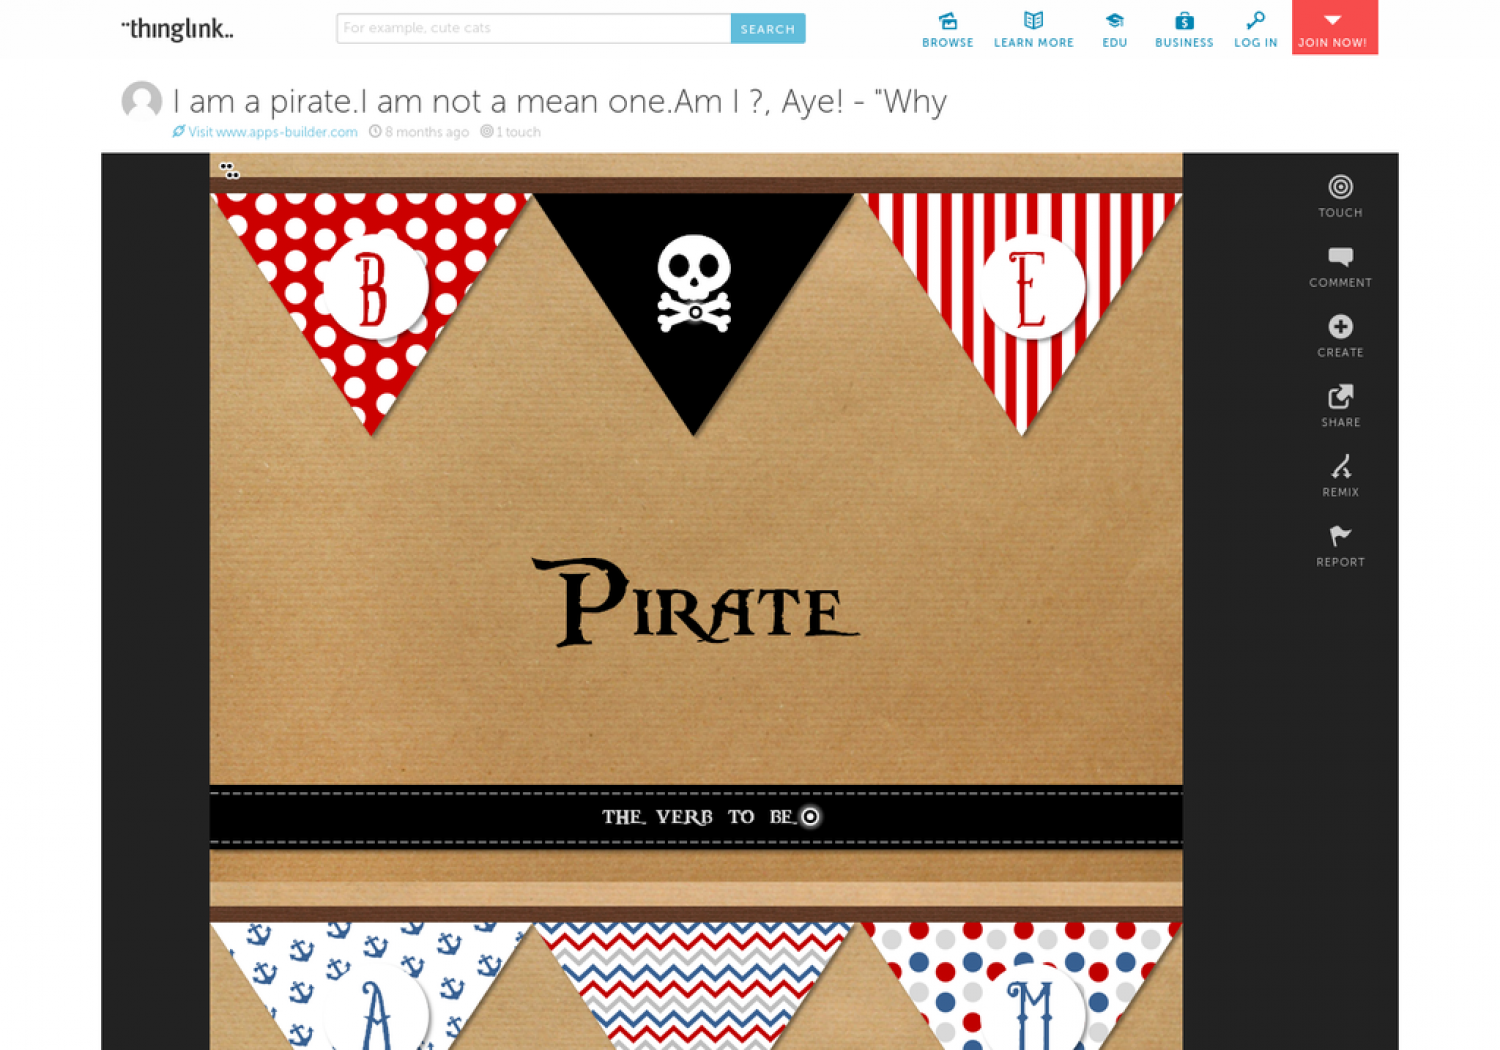 Be Pirate Infographic